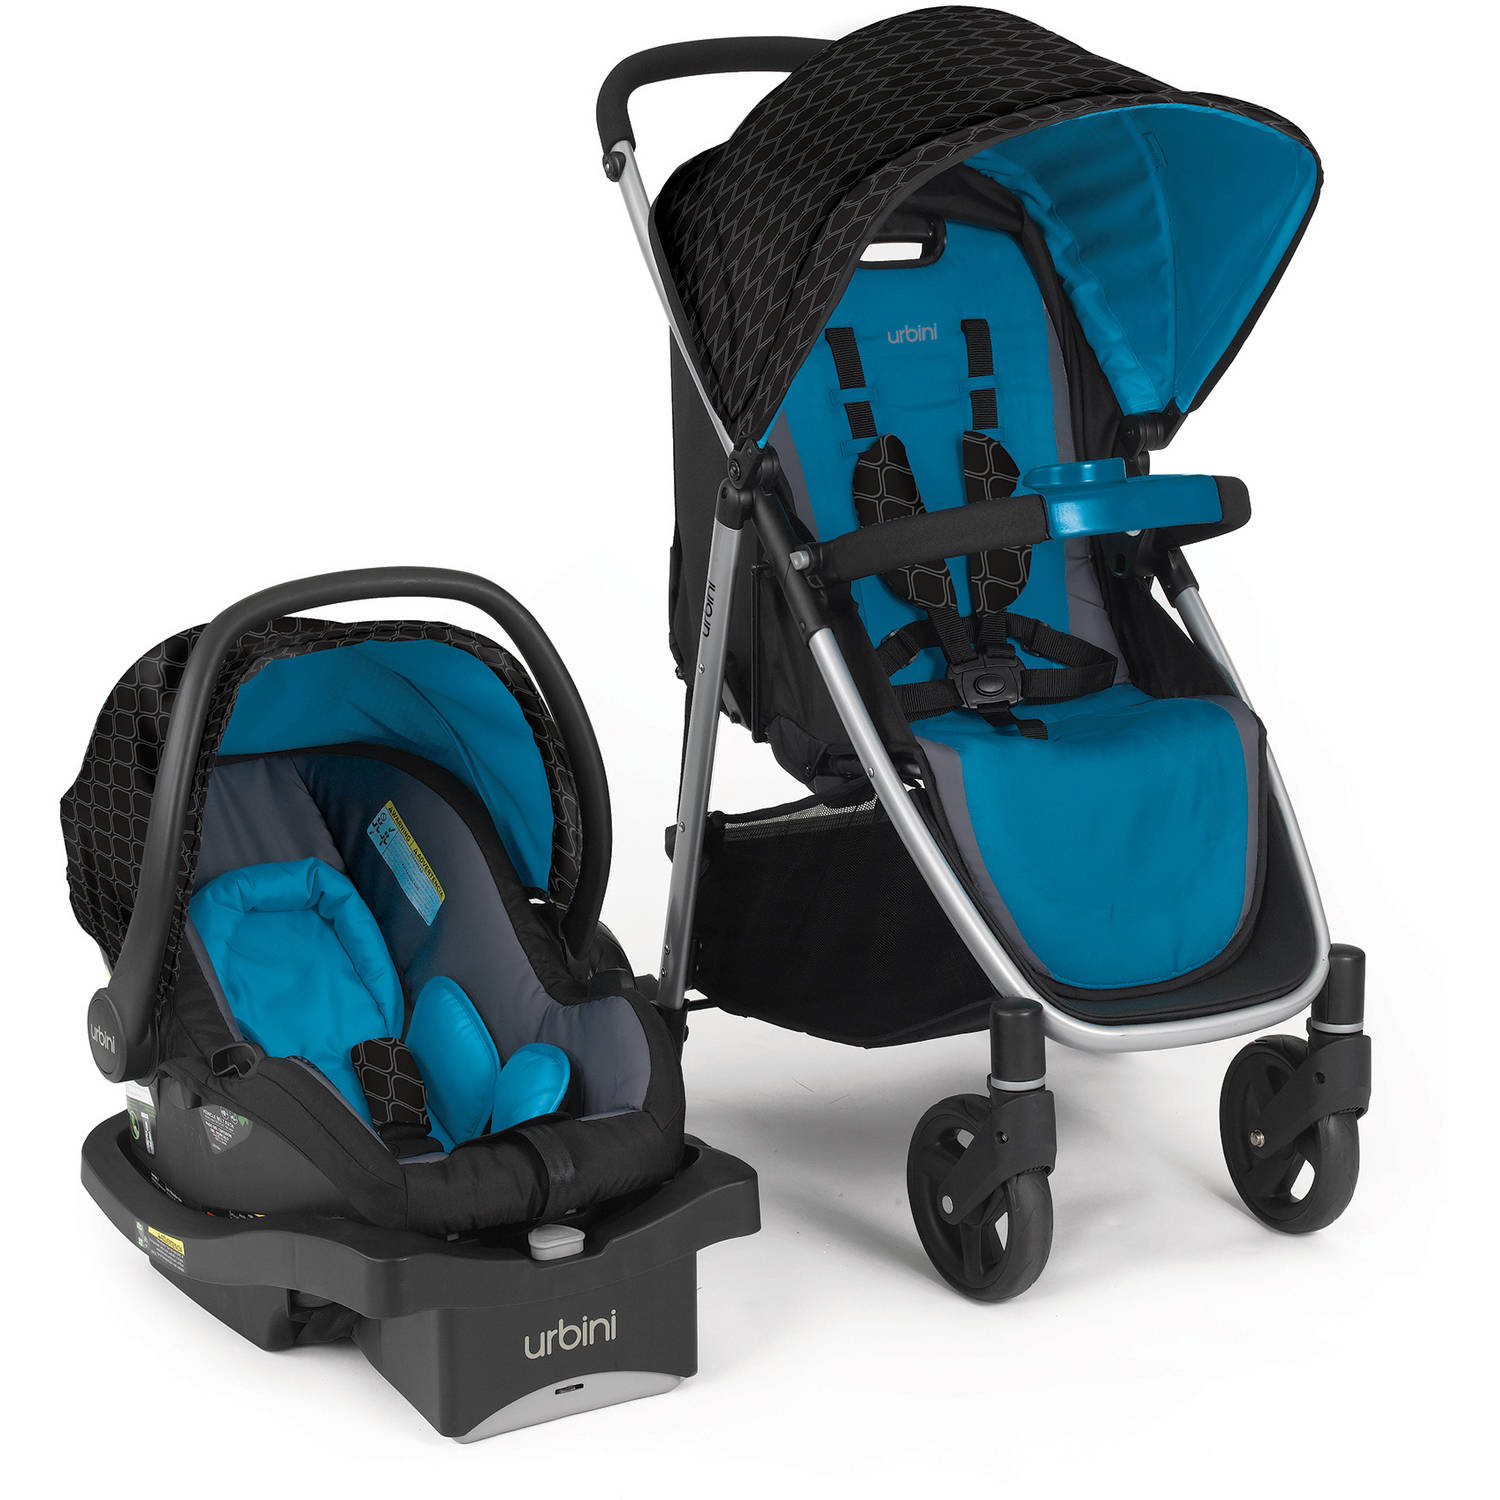 Urbini Turni 3 In 1 Travel System